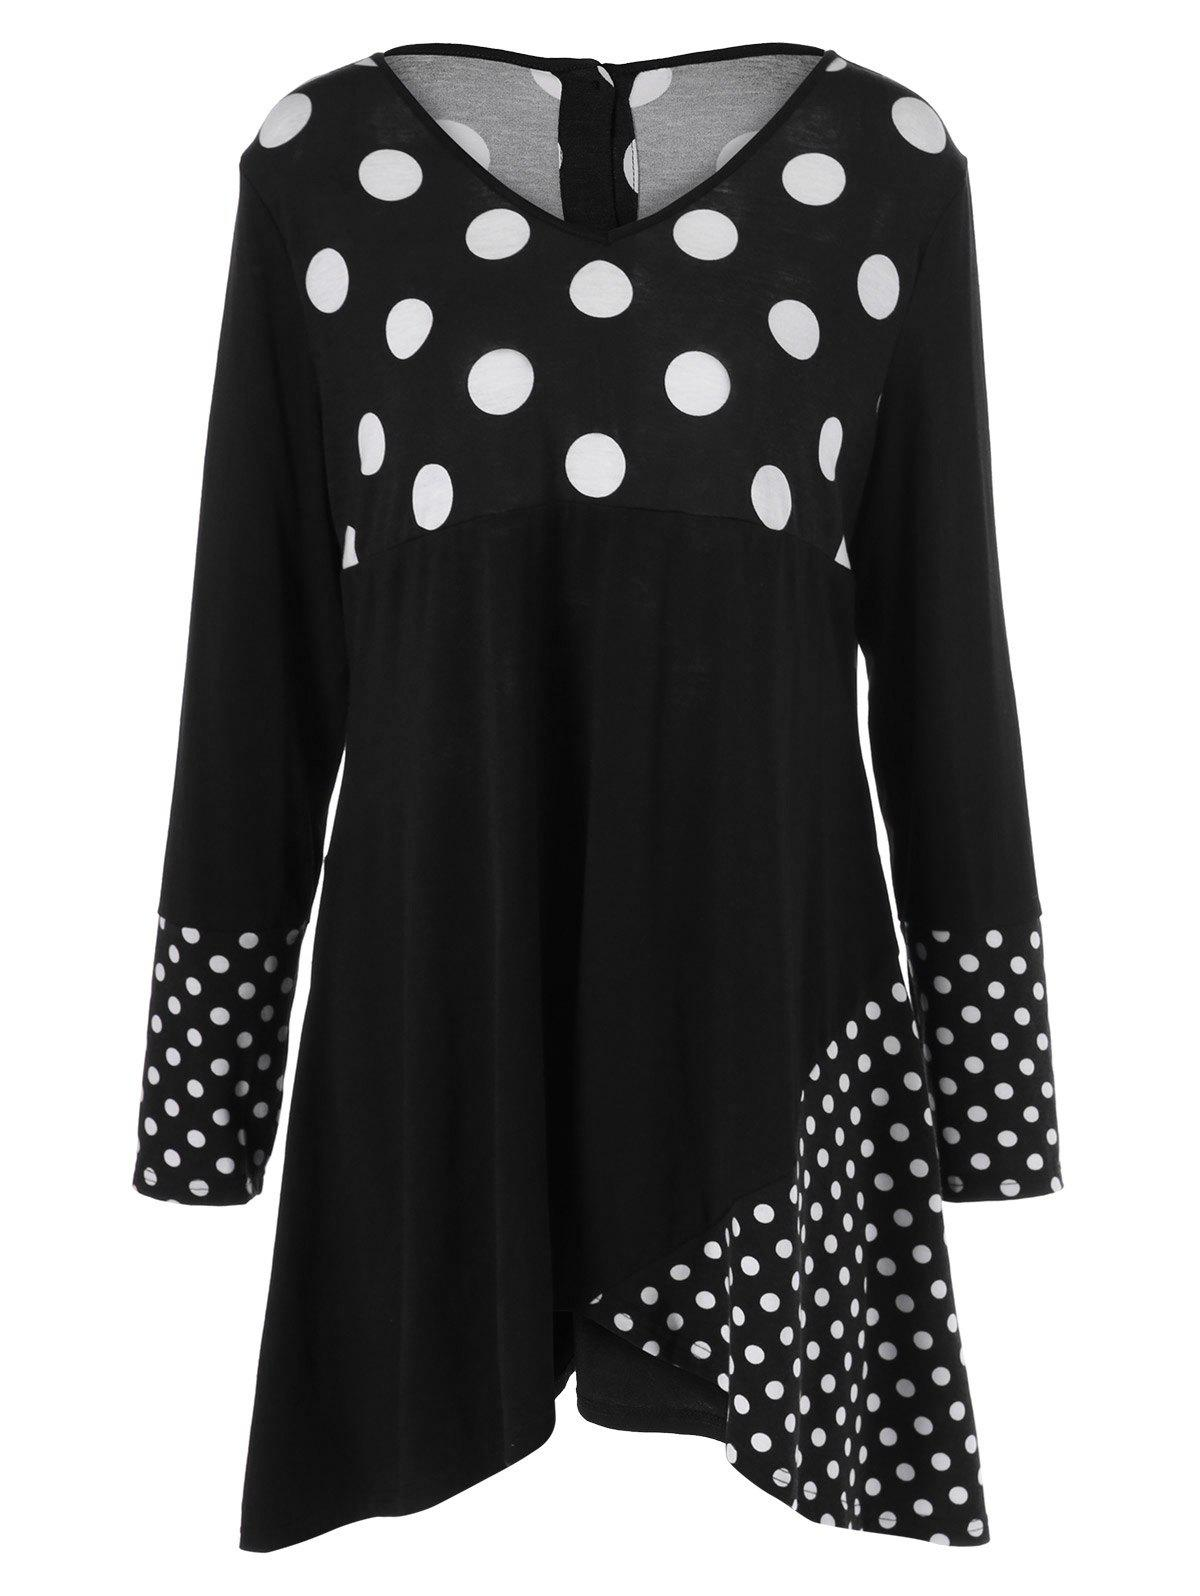 Plus Size Polka Dot Trim Asymmetrical Dress - WHITE/BLACK 3XL